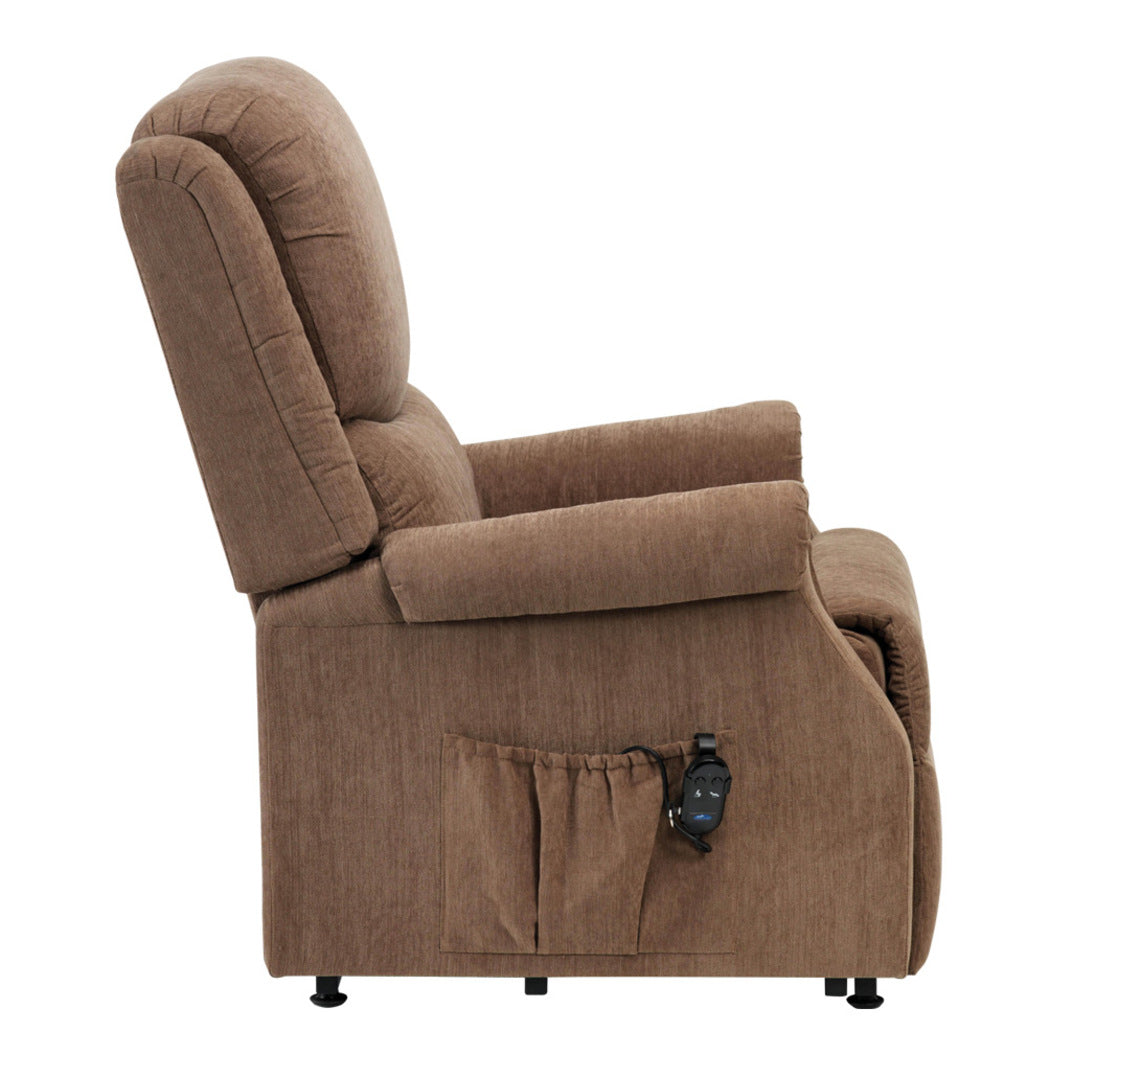 Restwell Indiana Rise and Recline Armchair - Petite